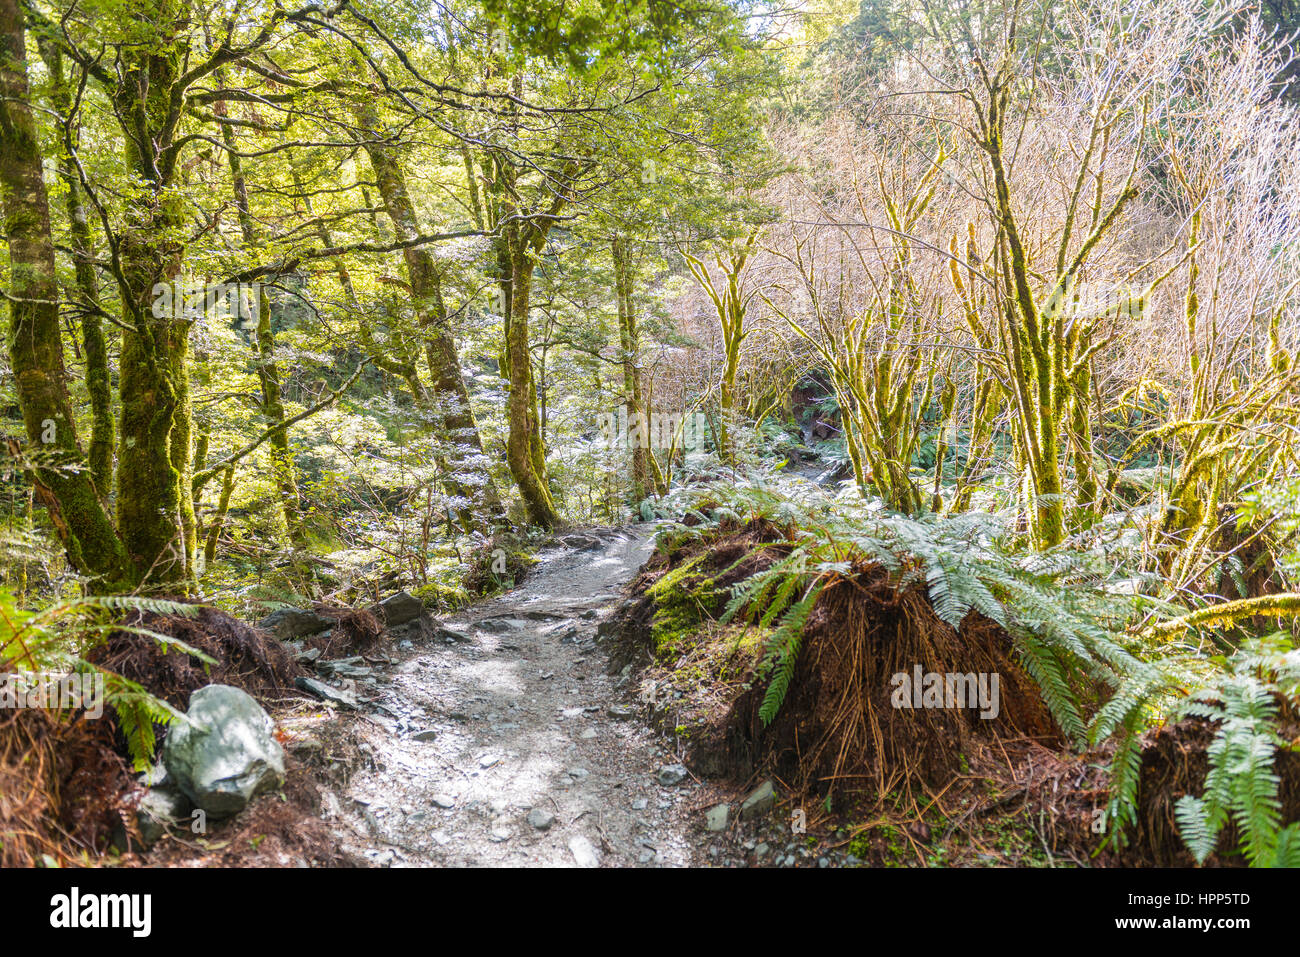 Sentier à travers forêt avec fougère, la végétation alpine, Mount Aspiring National Park, Photo Stock